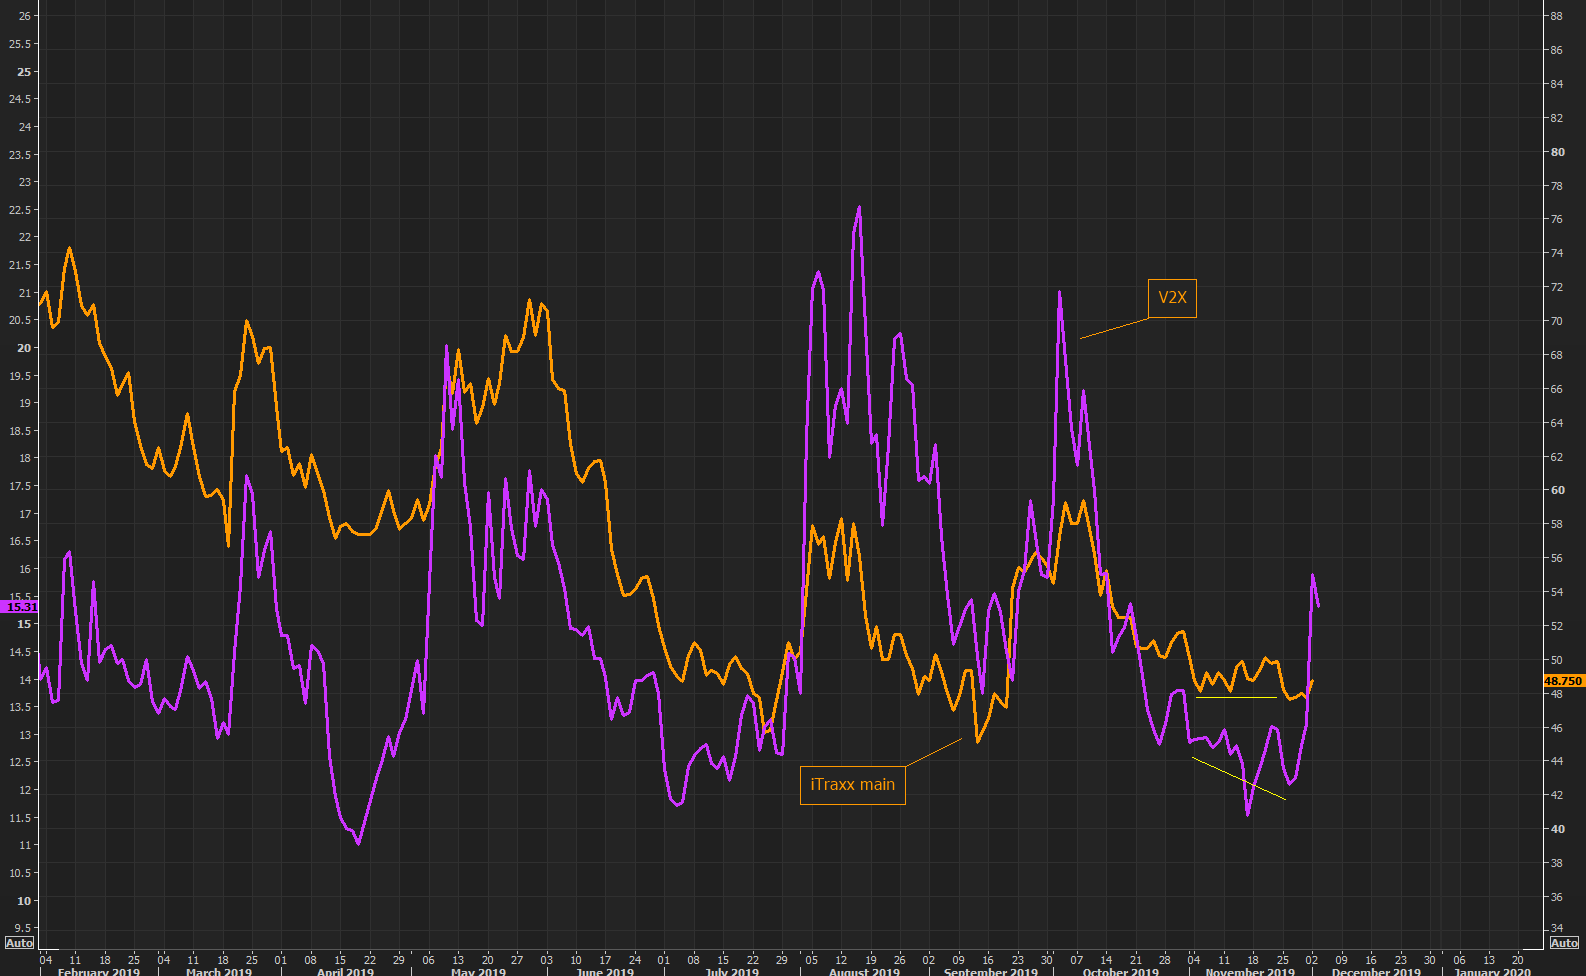 That was quick - equity volatility caught up to credit protection